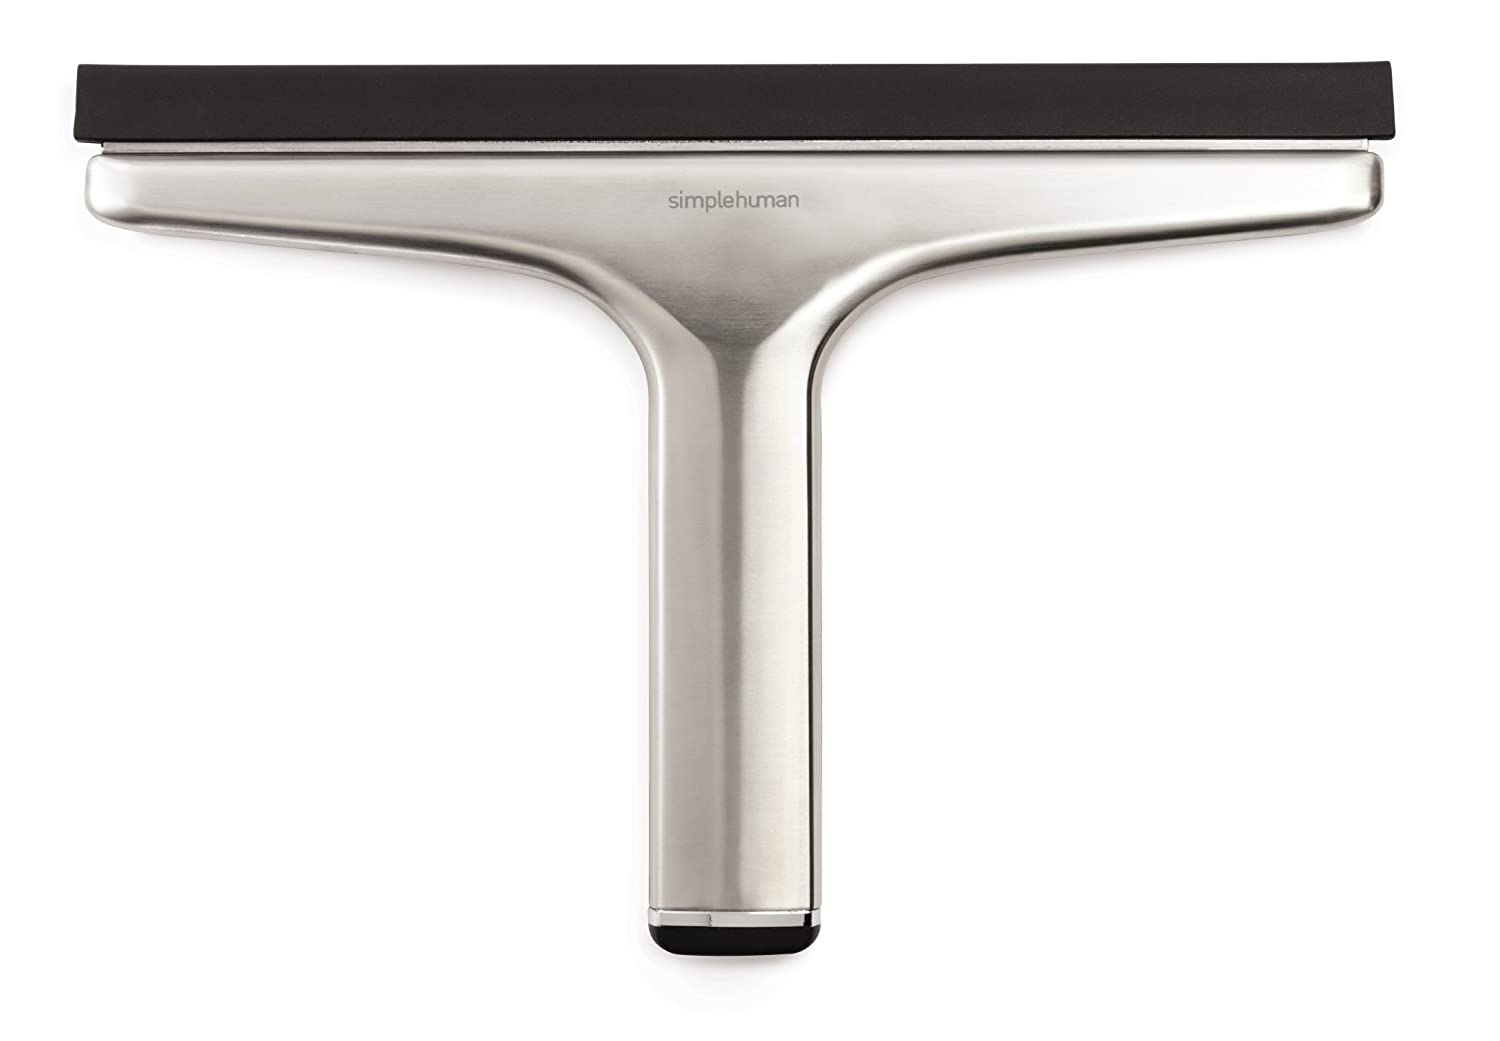 Amazon.com: simplehuman Bathroom Shower Squeegee, Stainless Steel ...